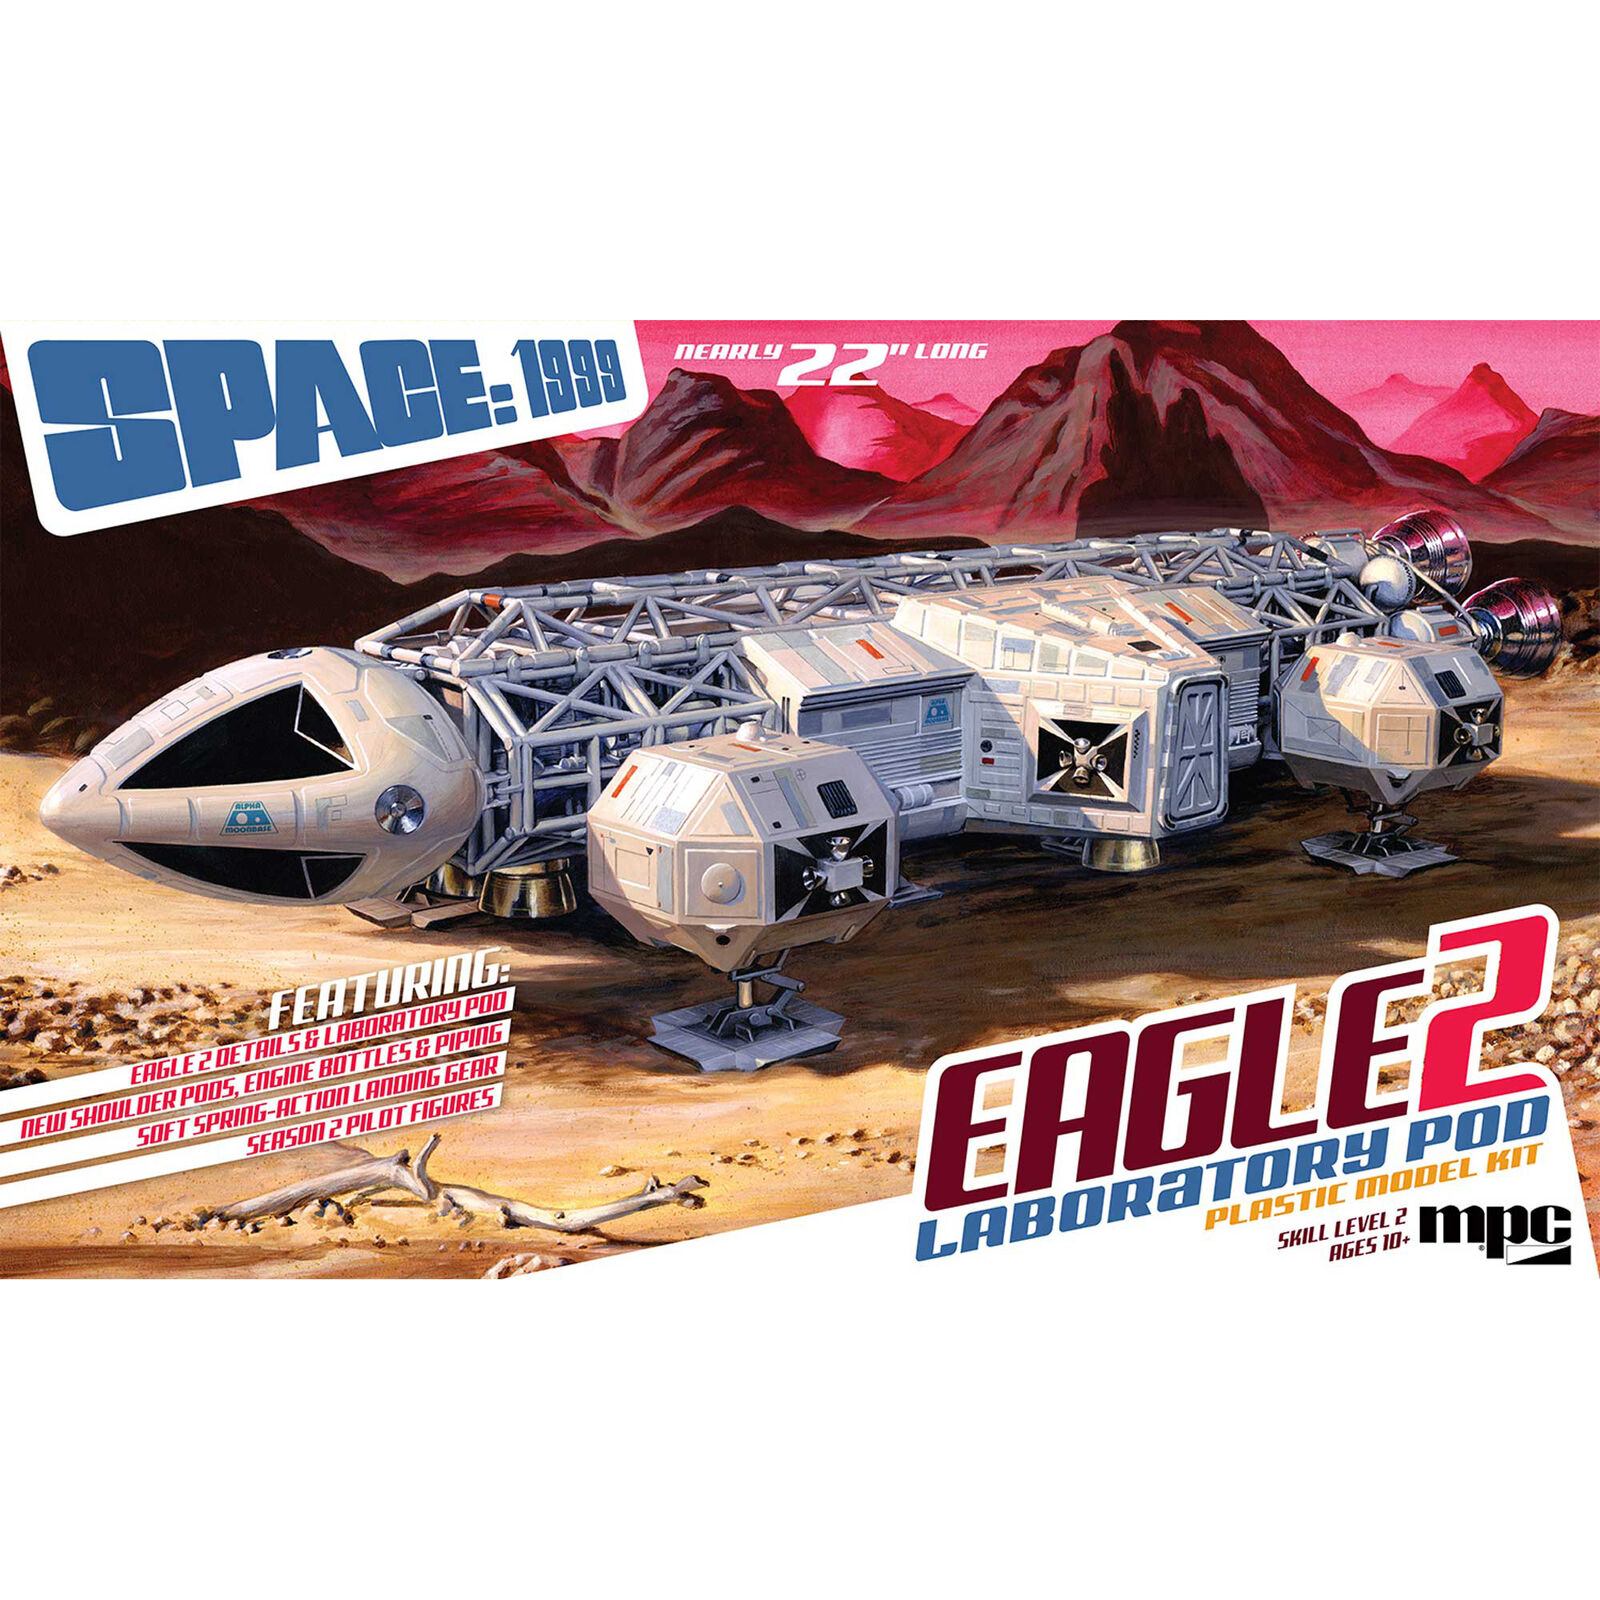 1/48 Space 1999 Eagle II with Lab Pod